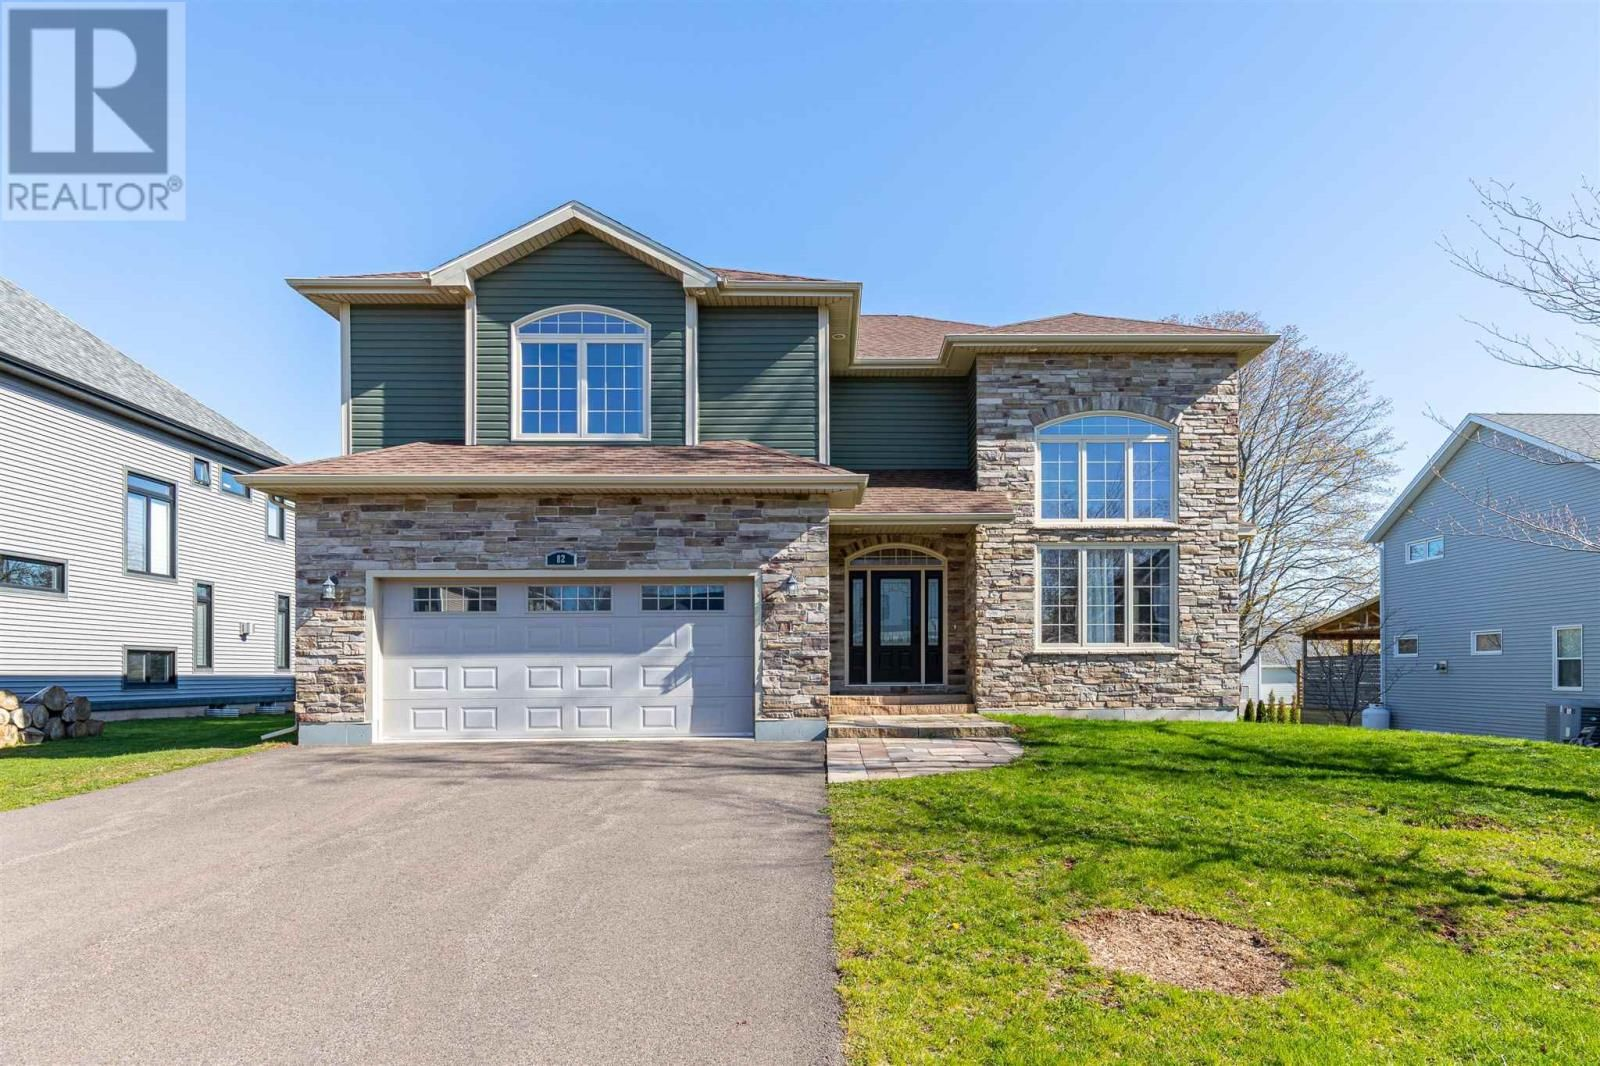 Main Photo: 82 Nash Drive in Charlottetown: House for sale : MLS®# 202111977